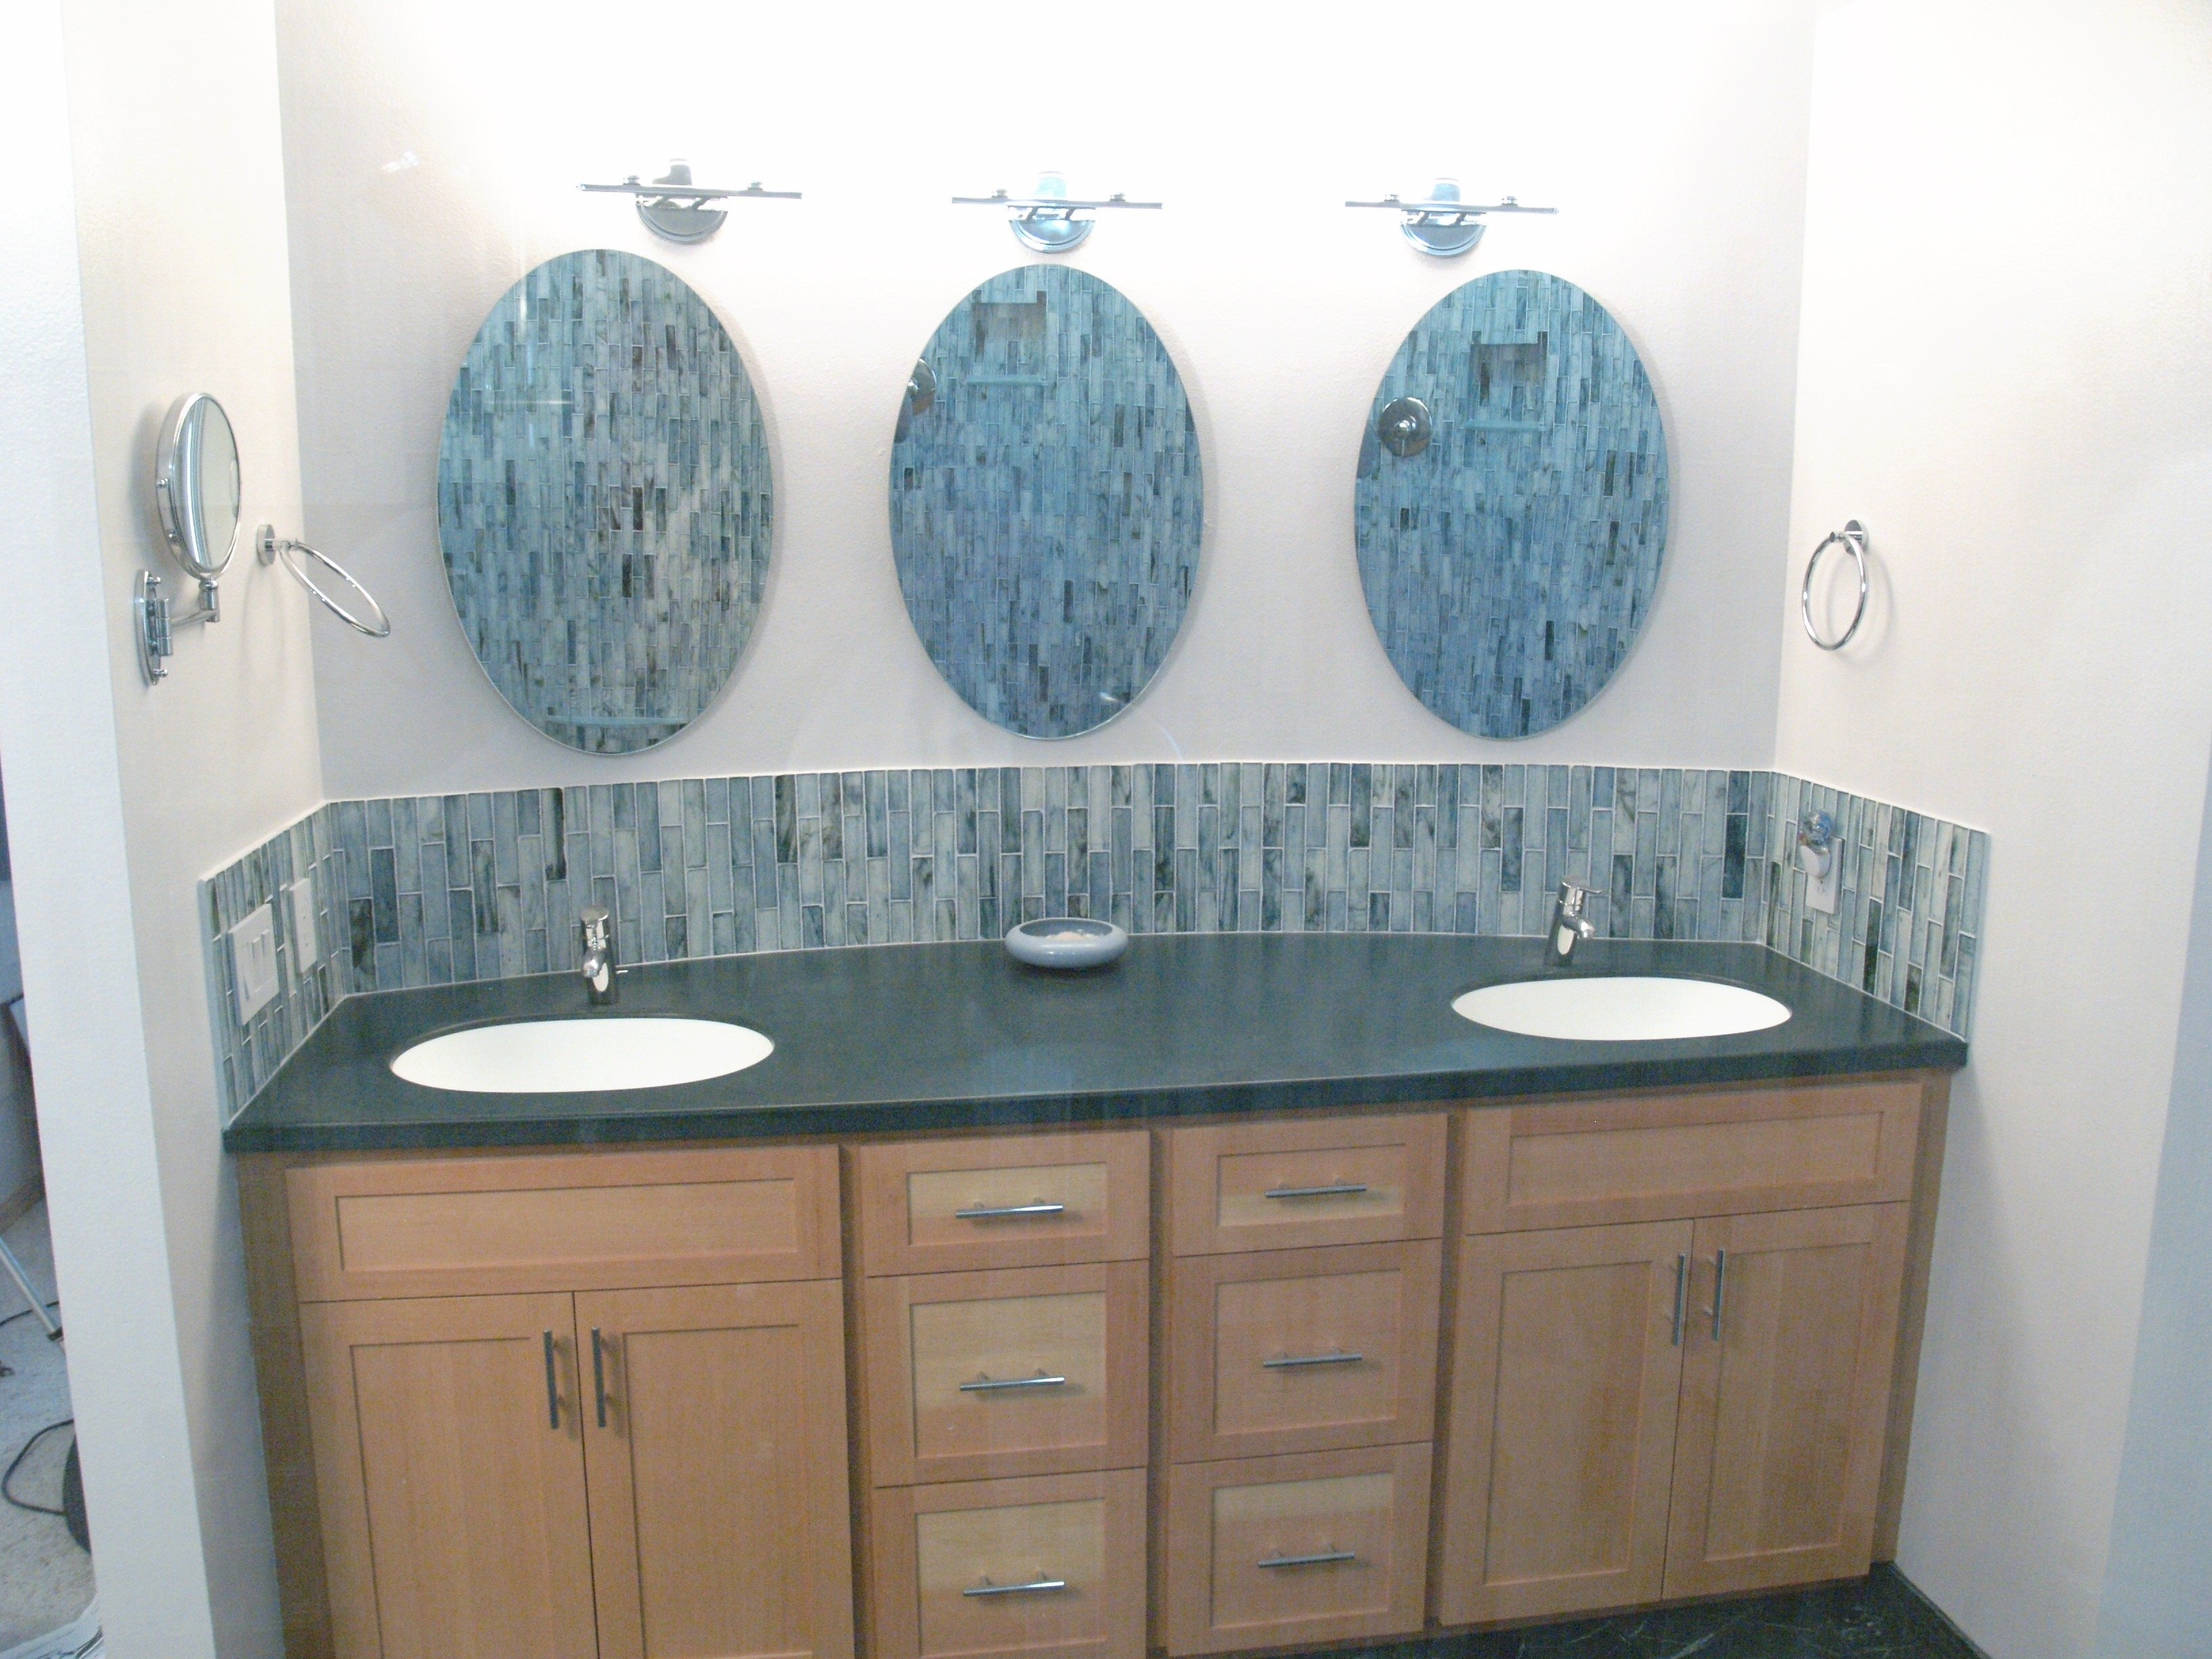 Bathroom Elegant Bathroom Decor With Large Framed Bathroom Intended For Triple Oval Wall Mirror (Image 2 of 15)